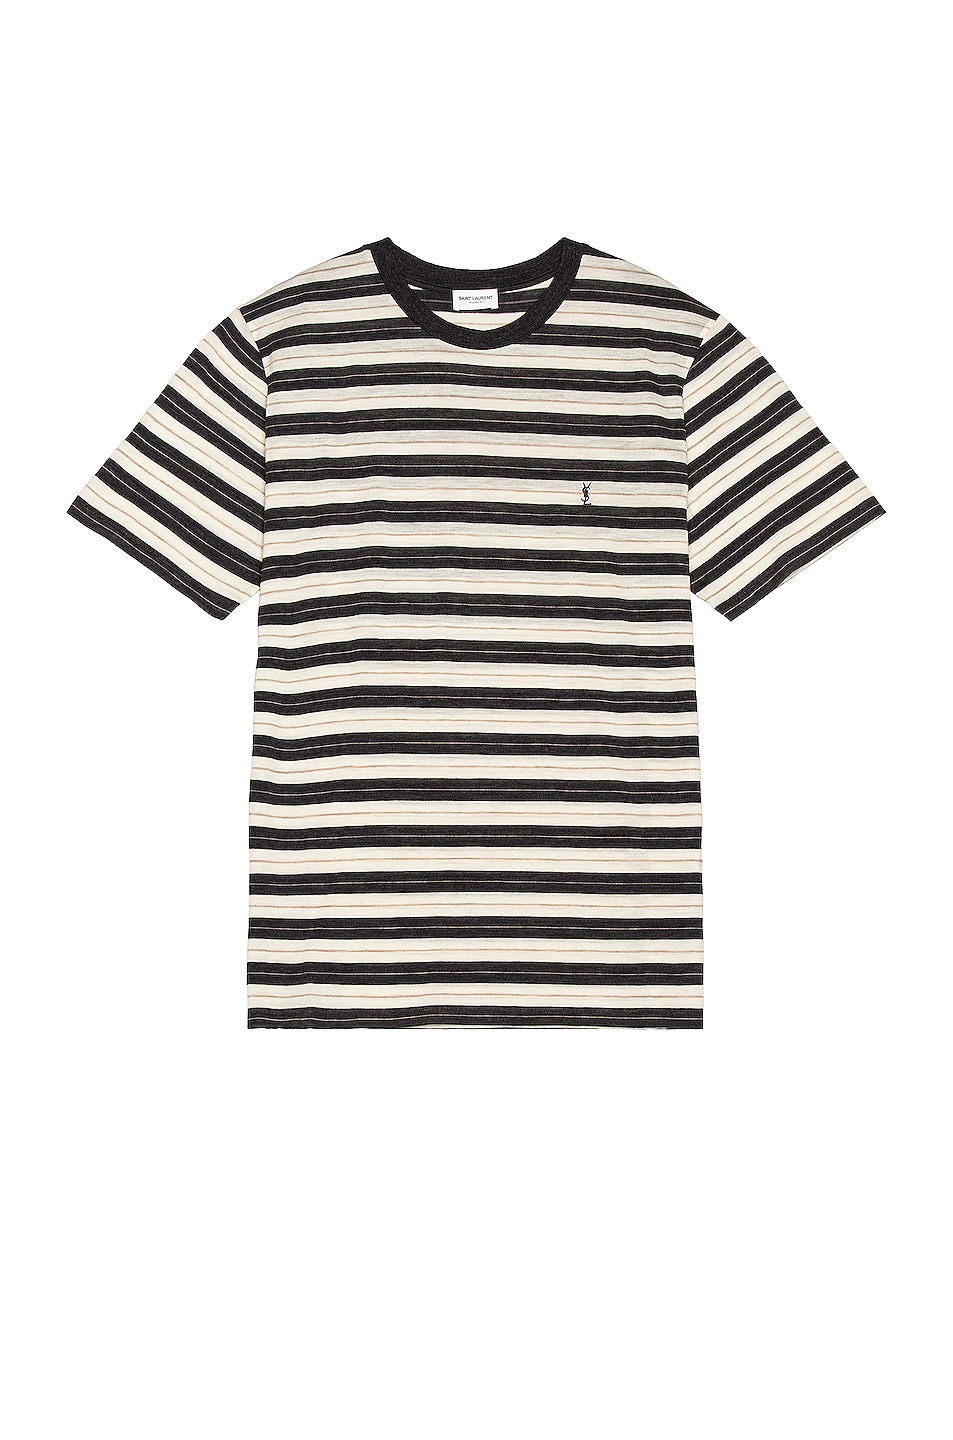 Image 1 of Saint Laurent Striped Tee in Anthracite Chine & Nat